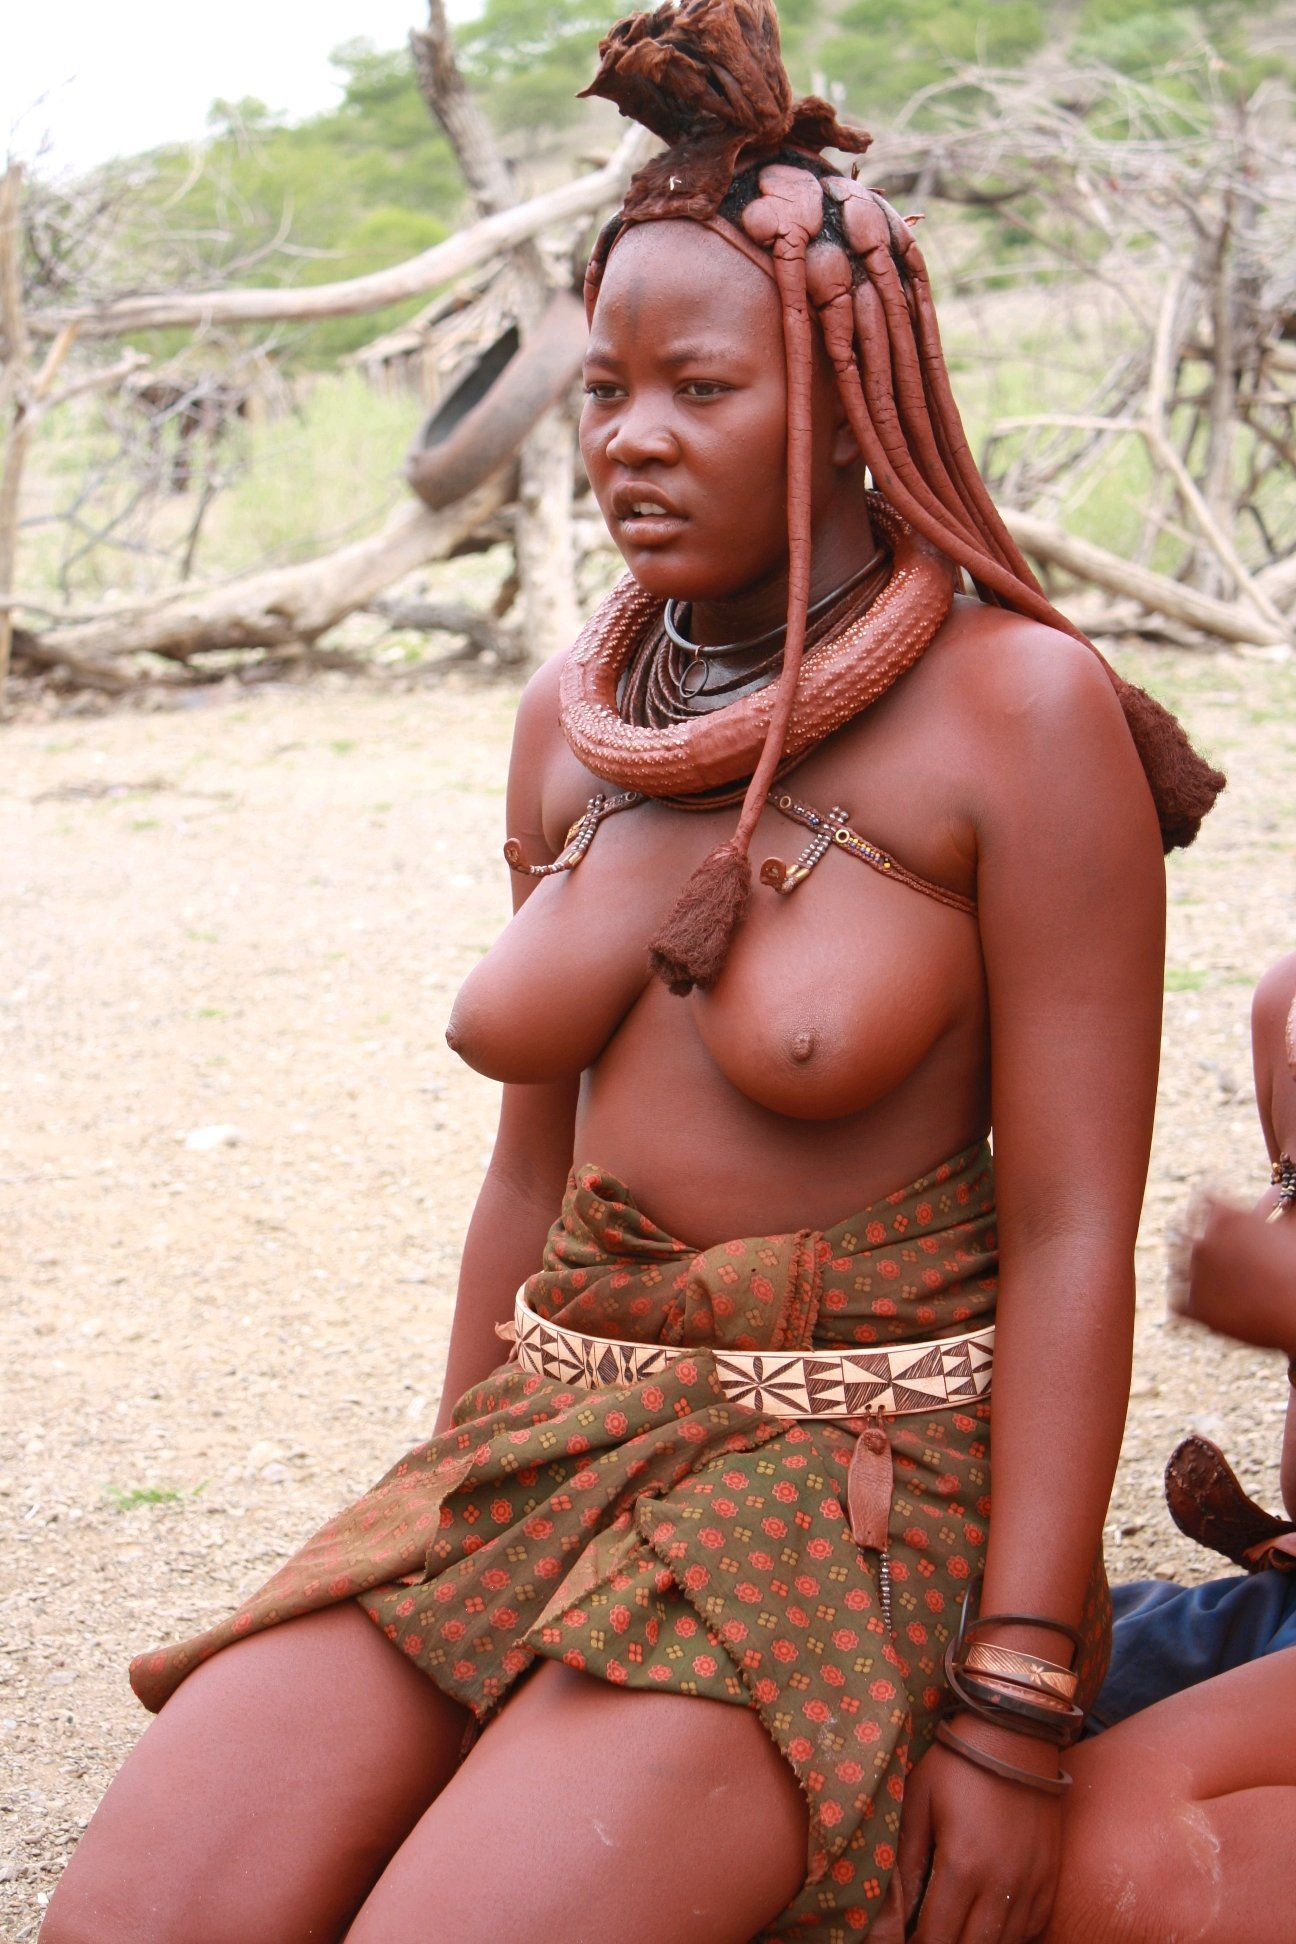 Nude pictures of african women